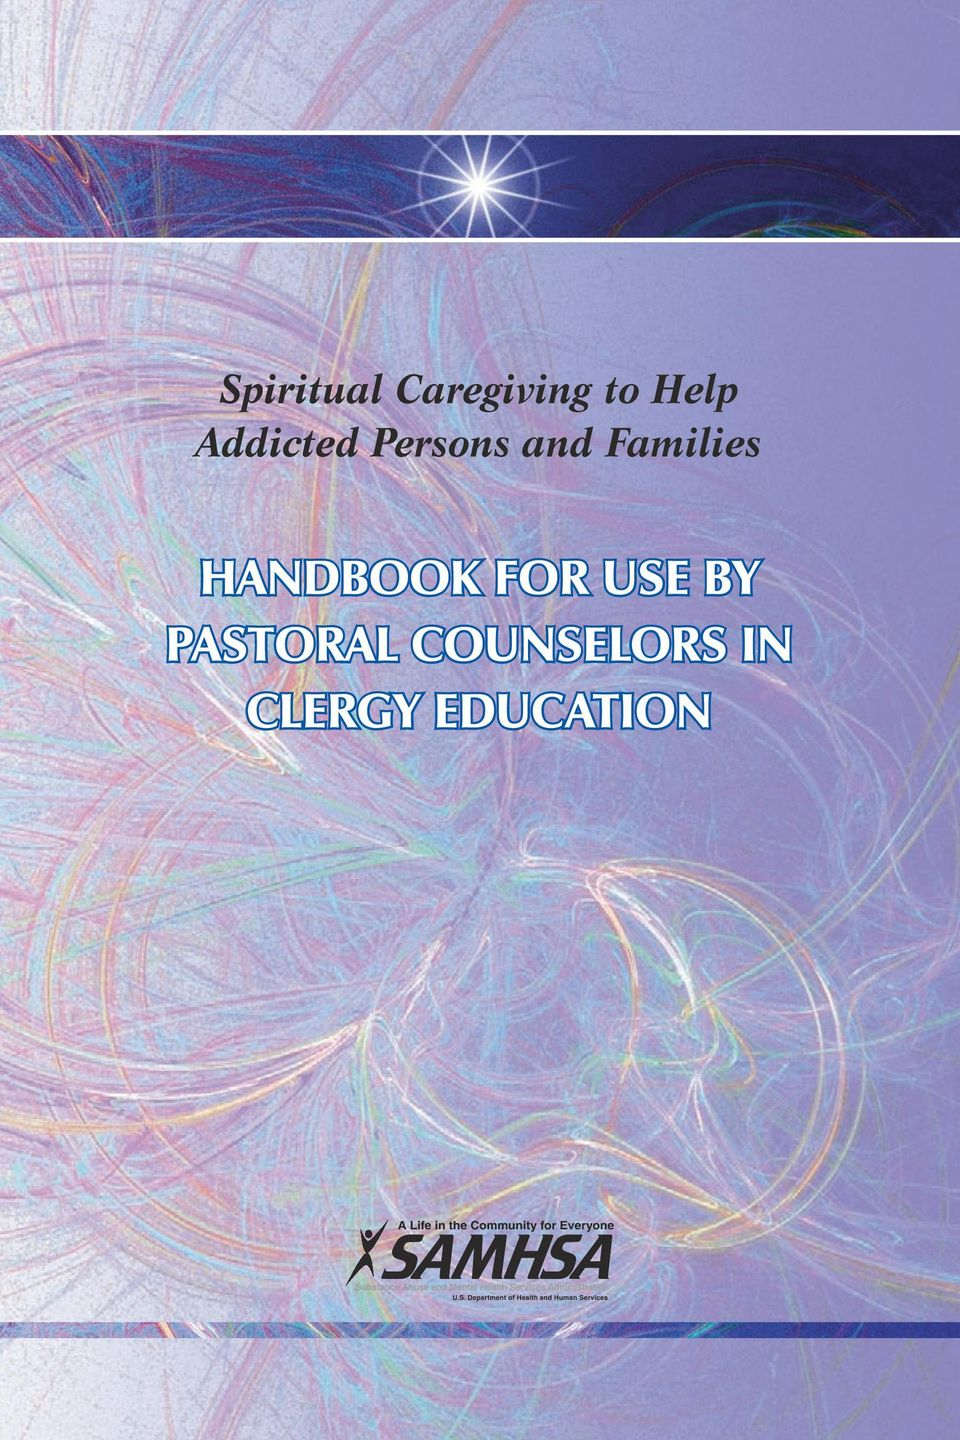 HANDBOOK FOR USE BY PASTORAL